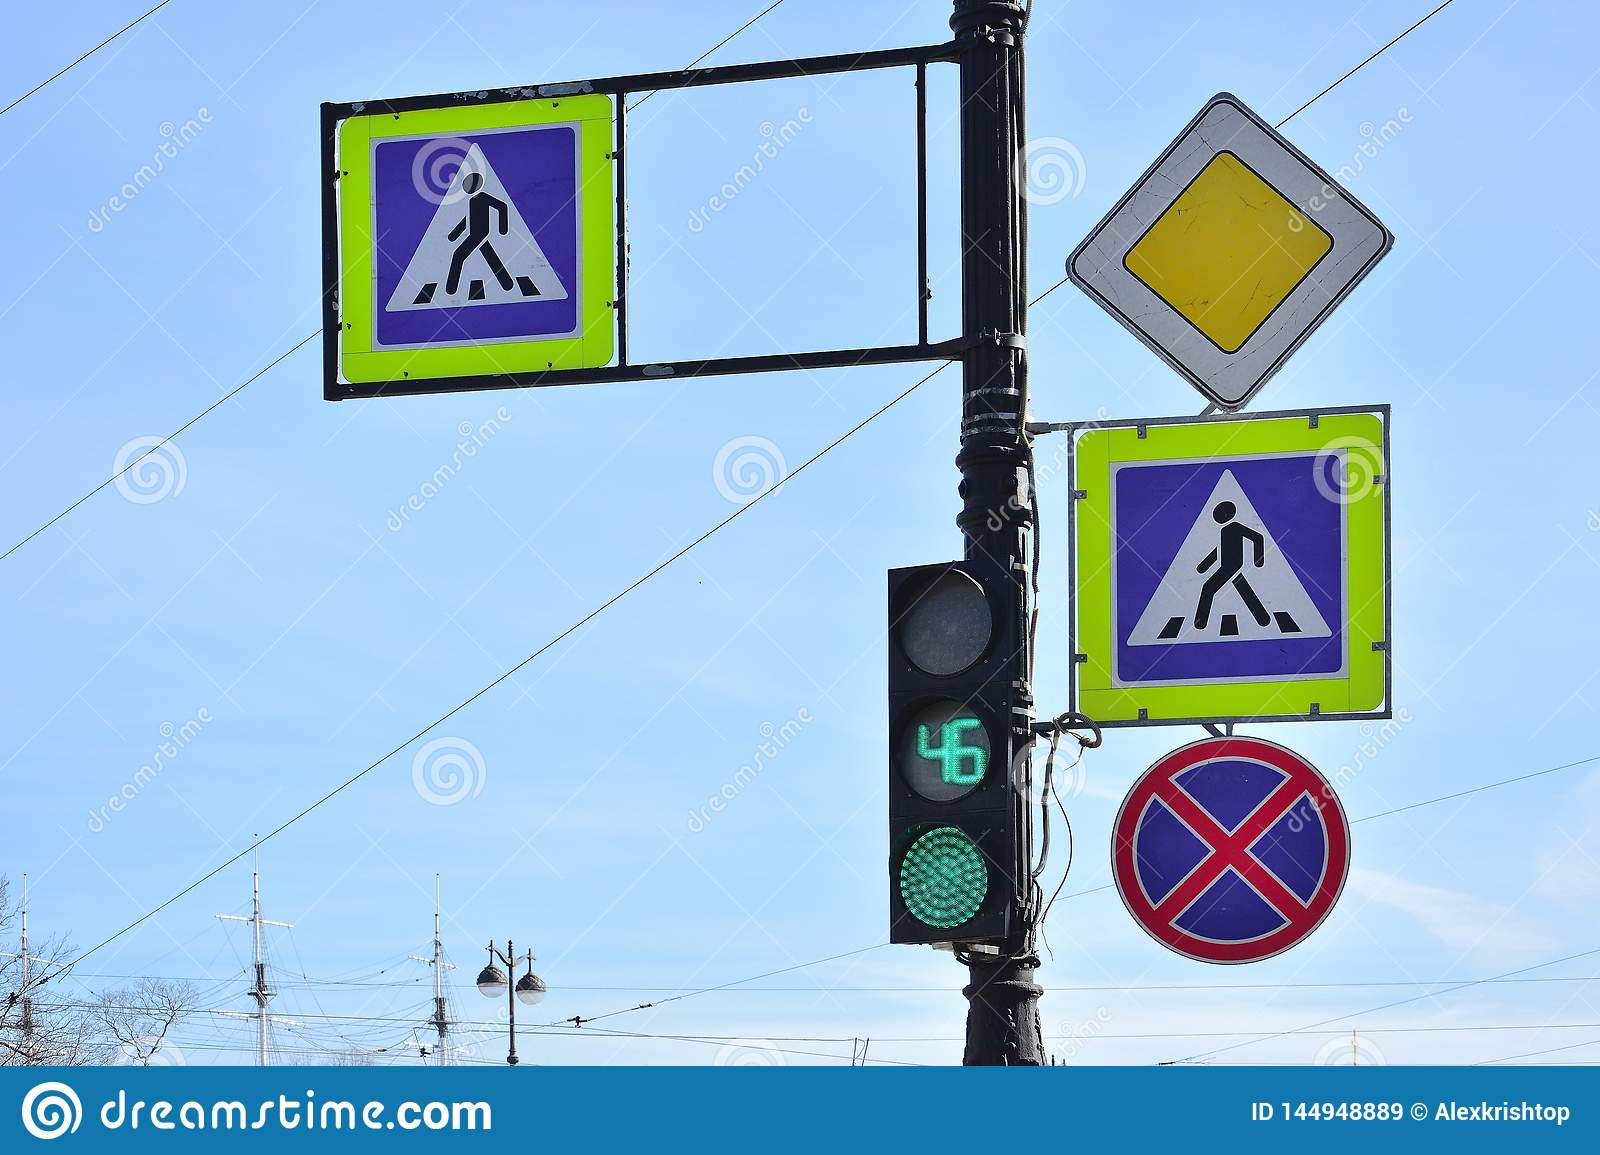 Four road signs and green traffic lightagainst blue background, Saint-Petersburg, Russia